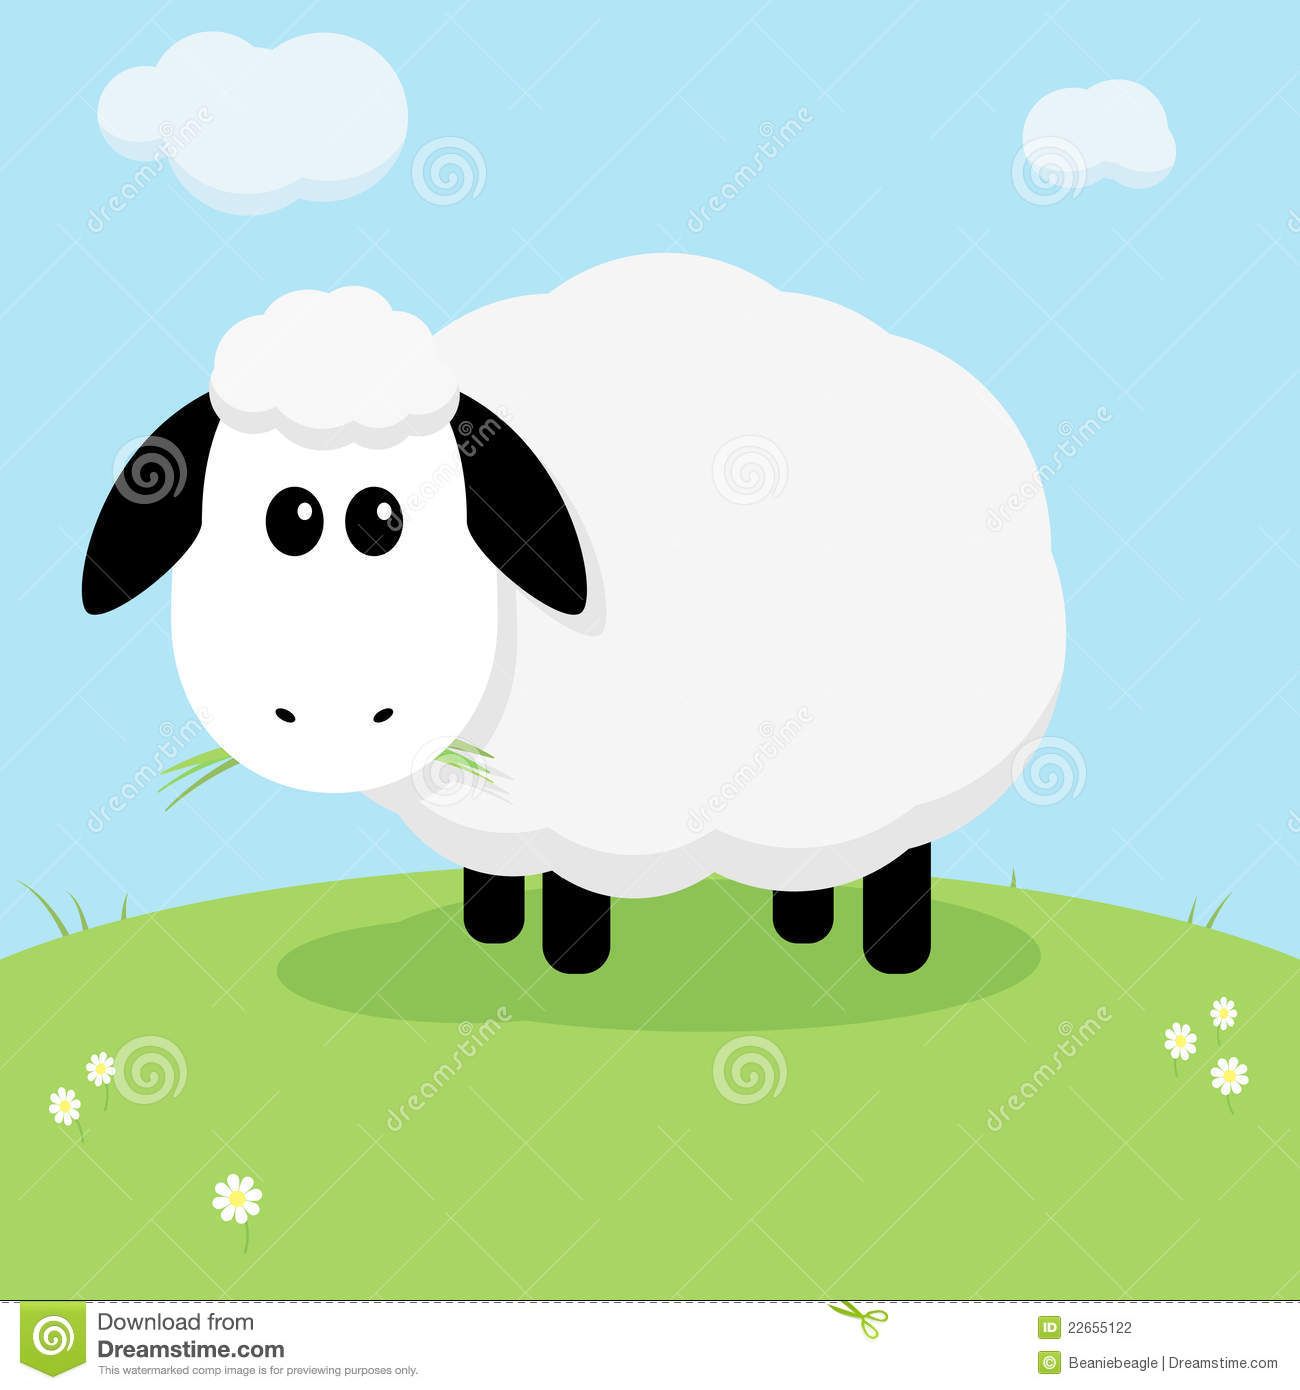 Moutons mignons